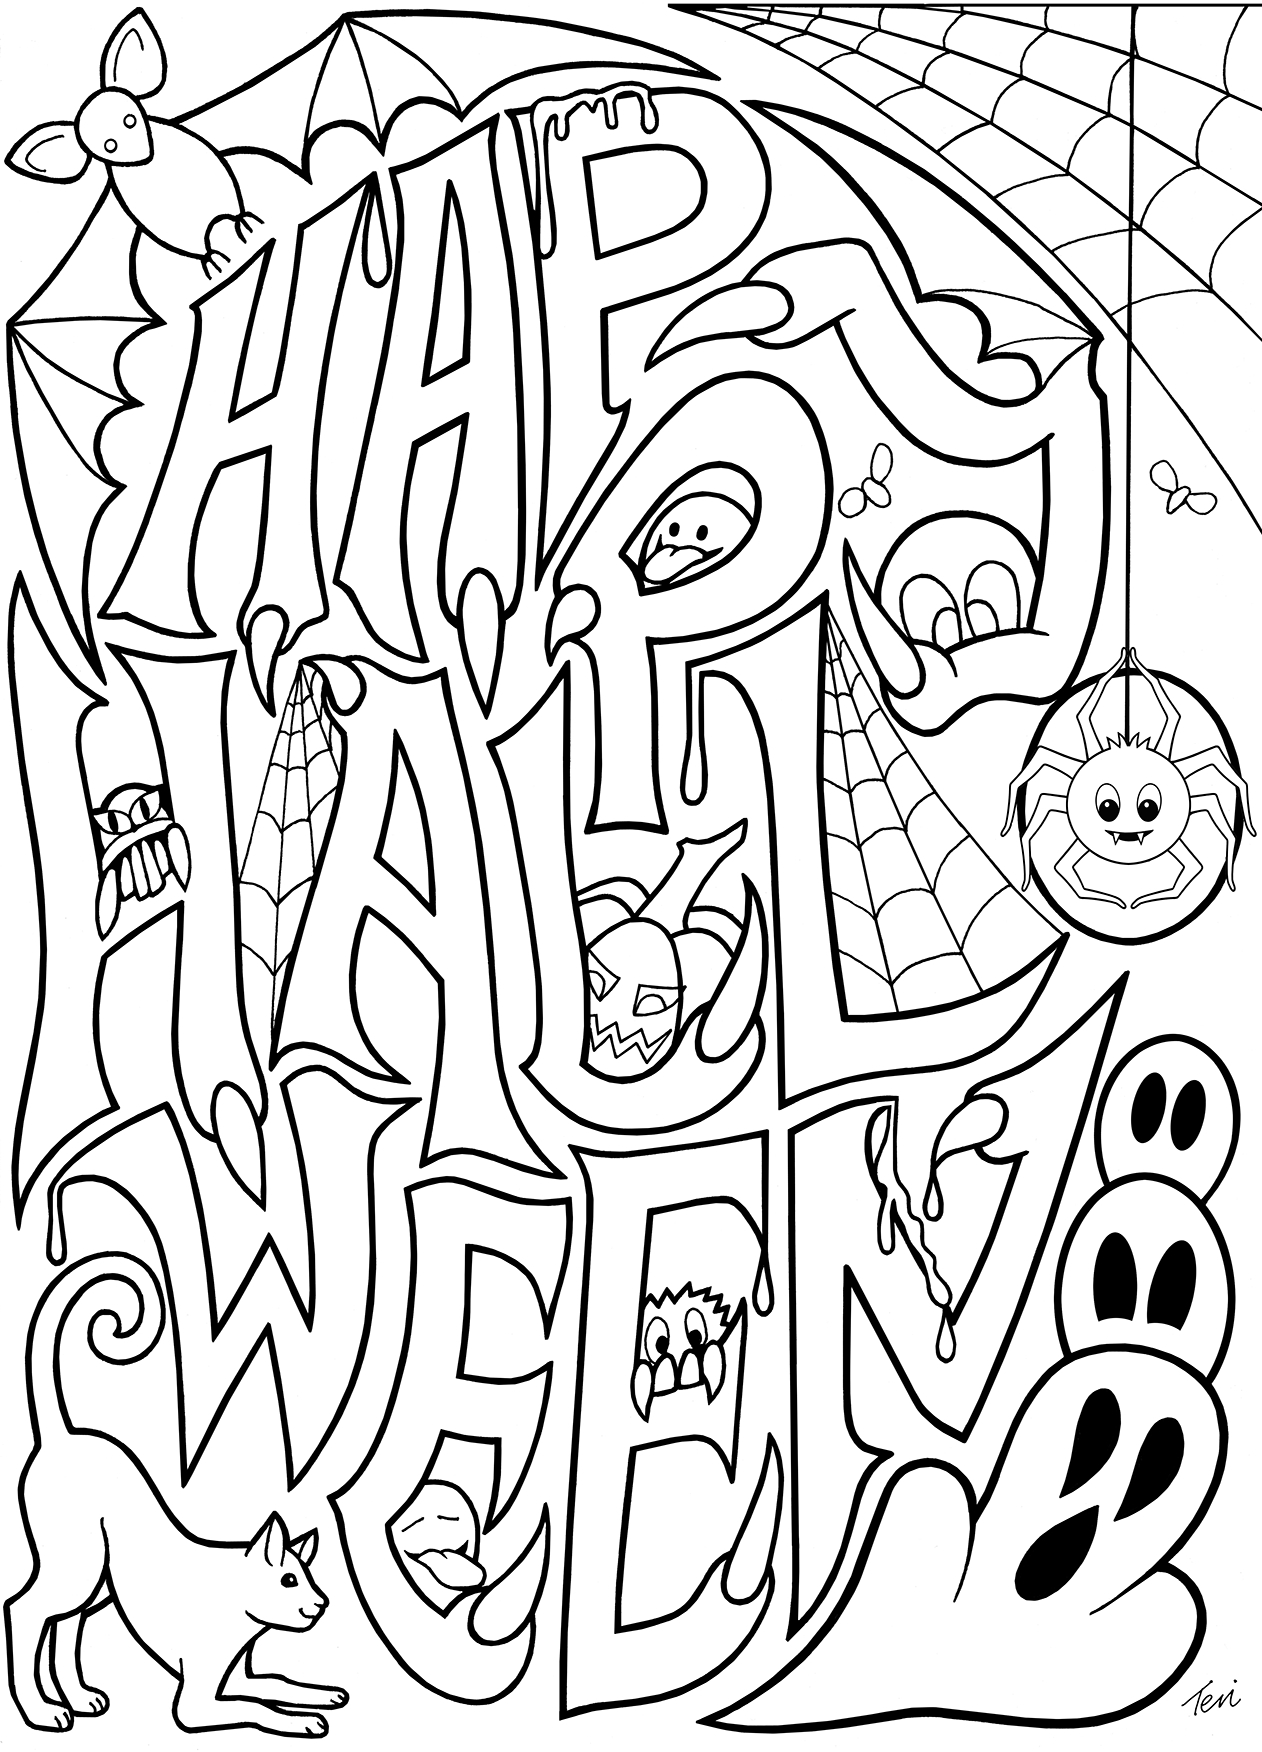 coloring pages halloween halloween coloring pages download free coloring sheets halloween coloring pages